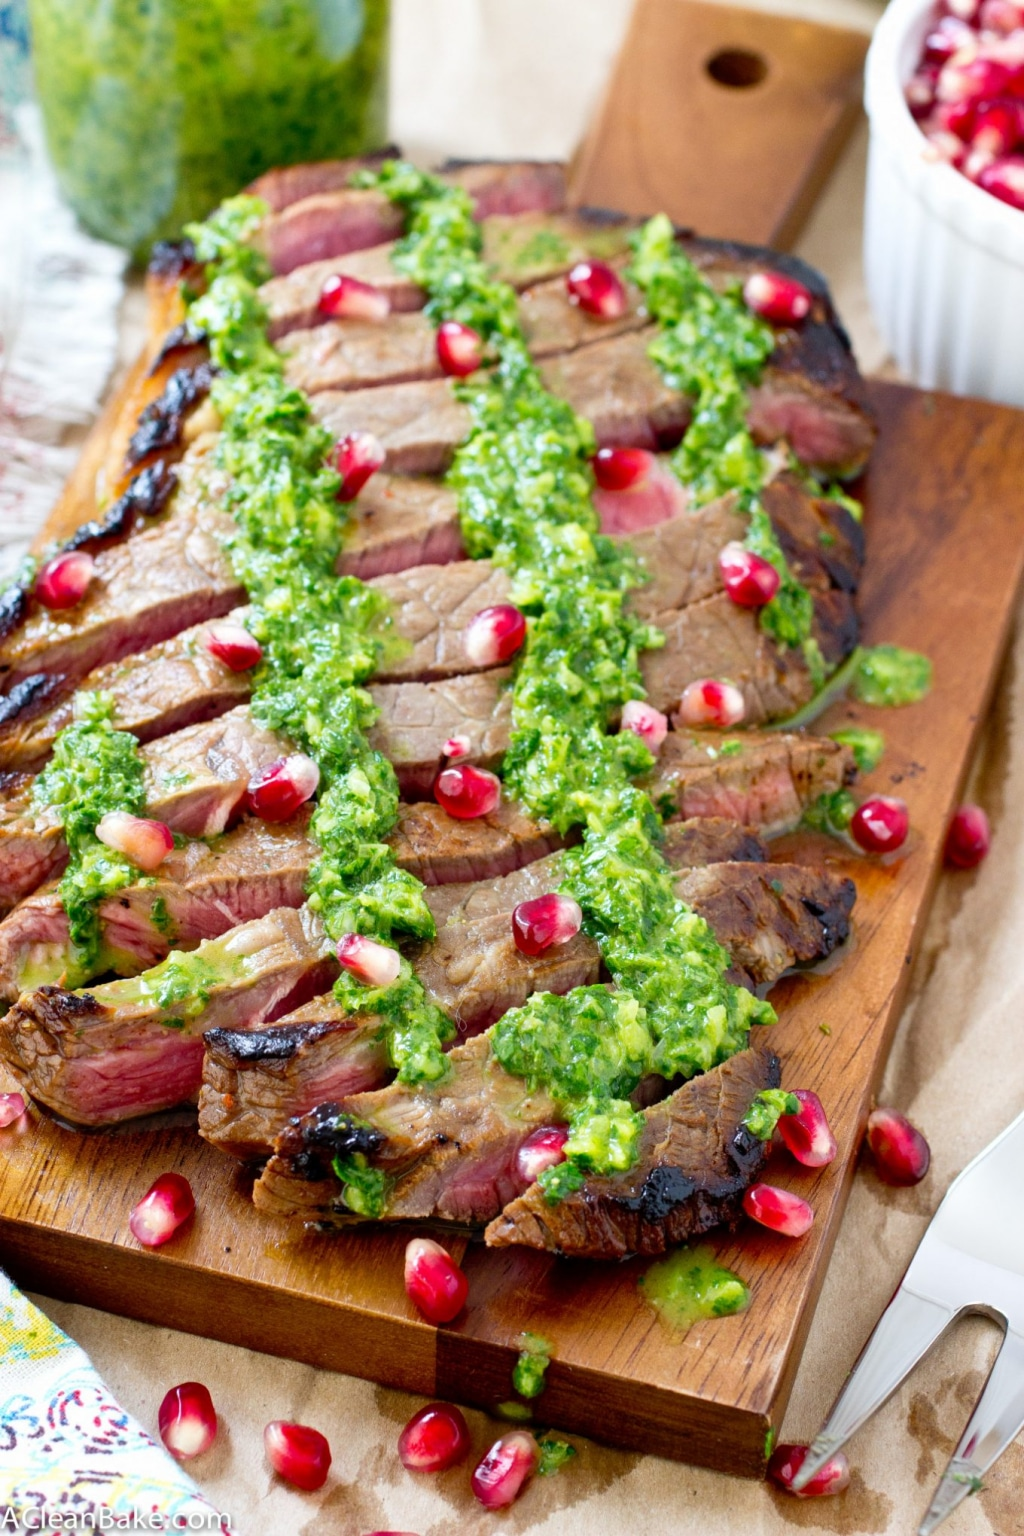 This juicy flank steak is drizzled with homemade chimichurri and plump pomegranate seeds for a simple, flavorful dinner! (gluten free, paleo and low carb)